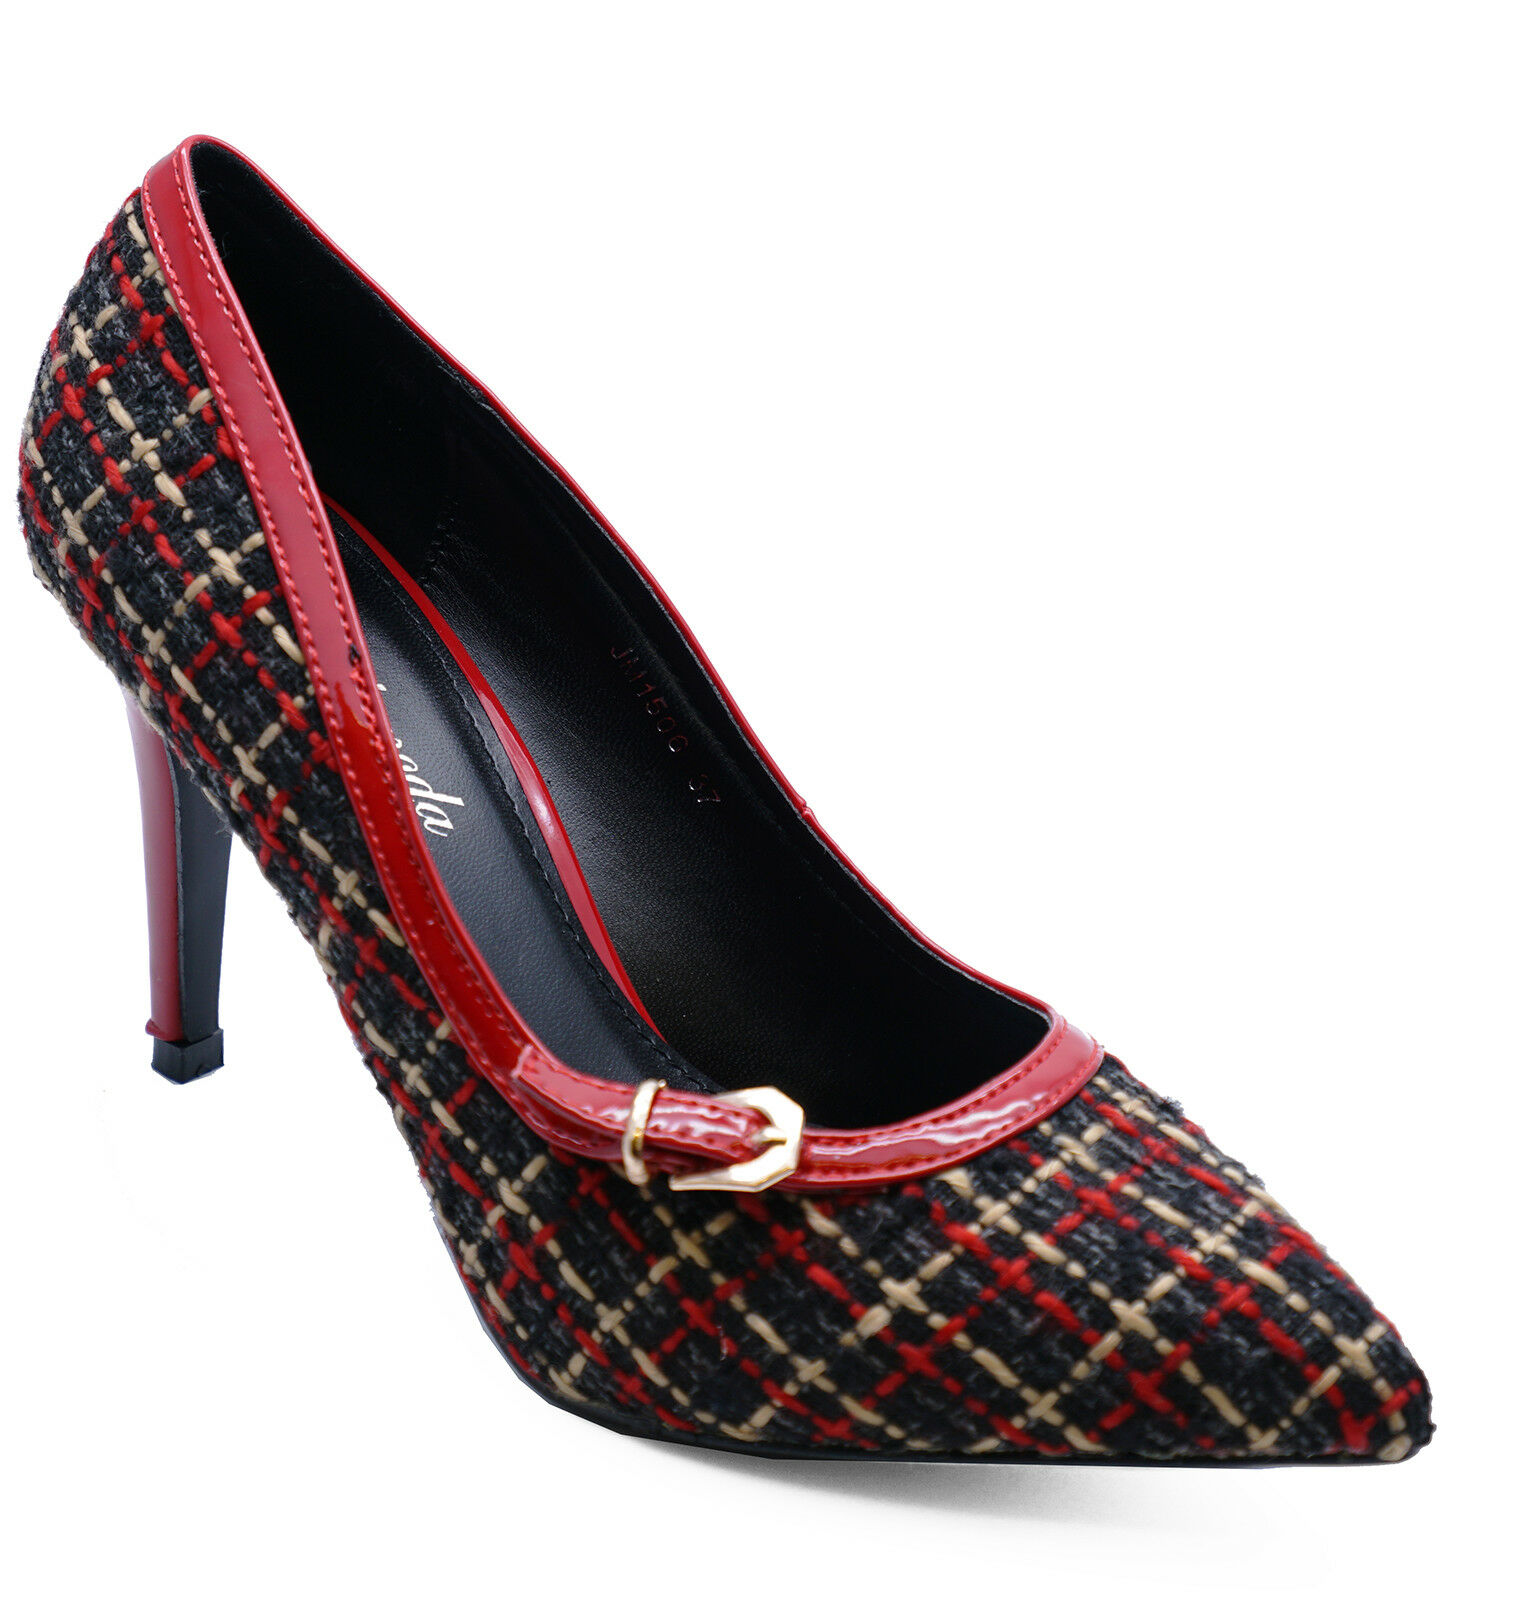 LADIES RED BLACK OR TEAL PLATFORM STILETTO WOMENS TWEED COURT SHOES SIZES 3-8